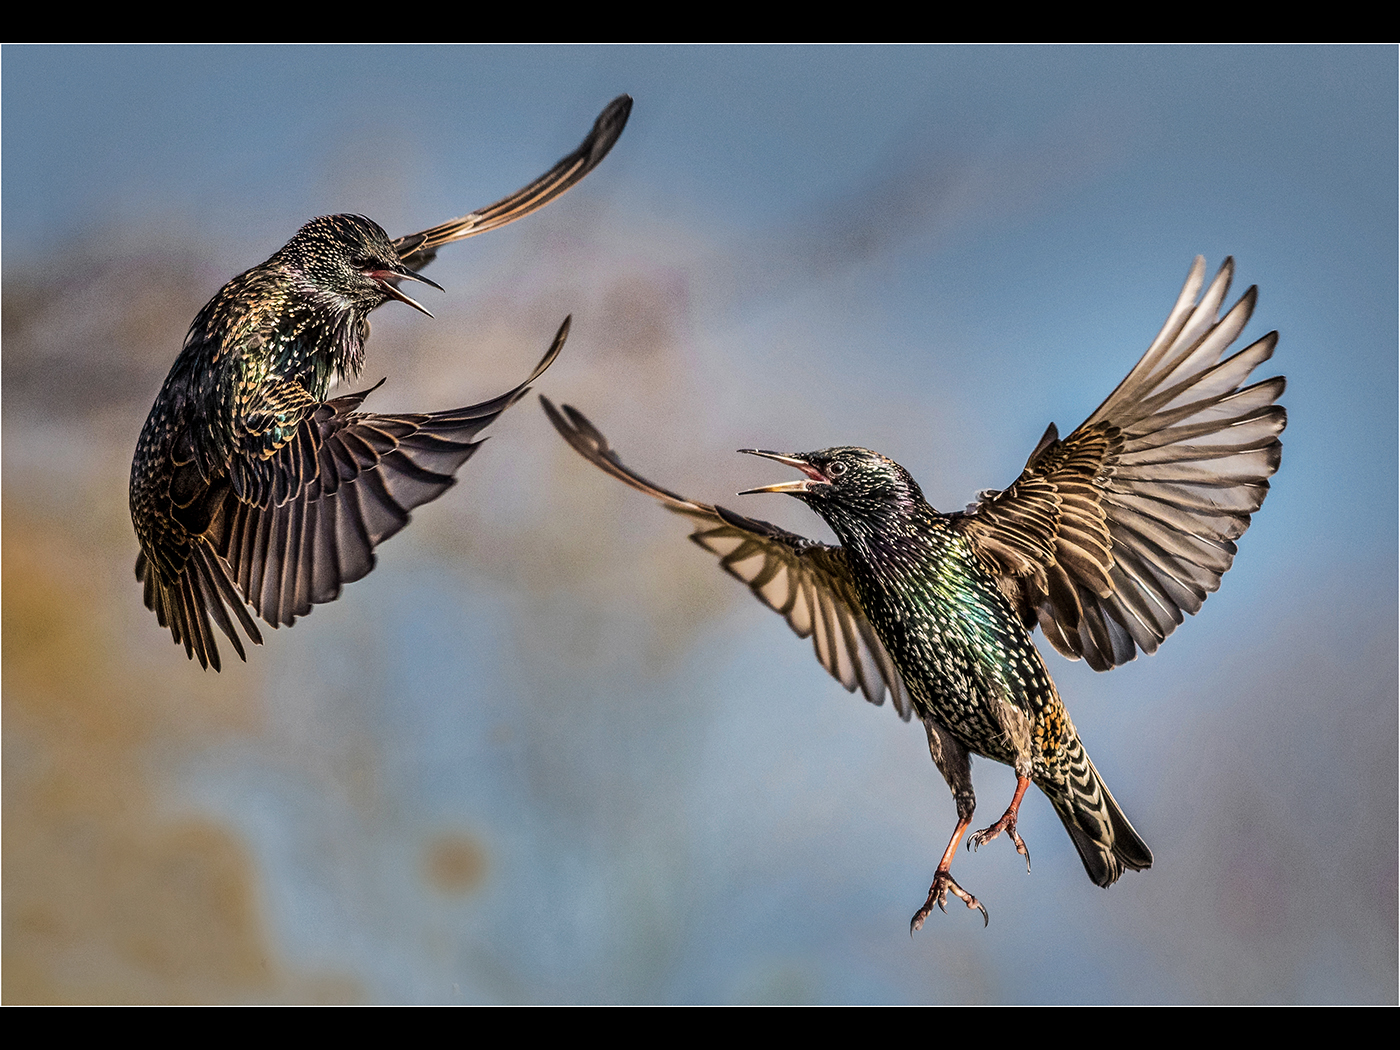 01_Bill Smith_Fighting Starlings